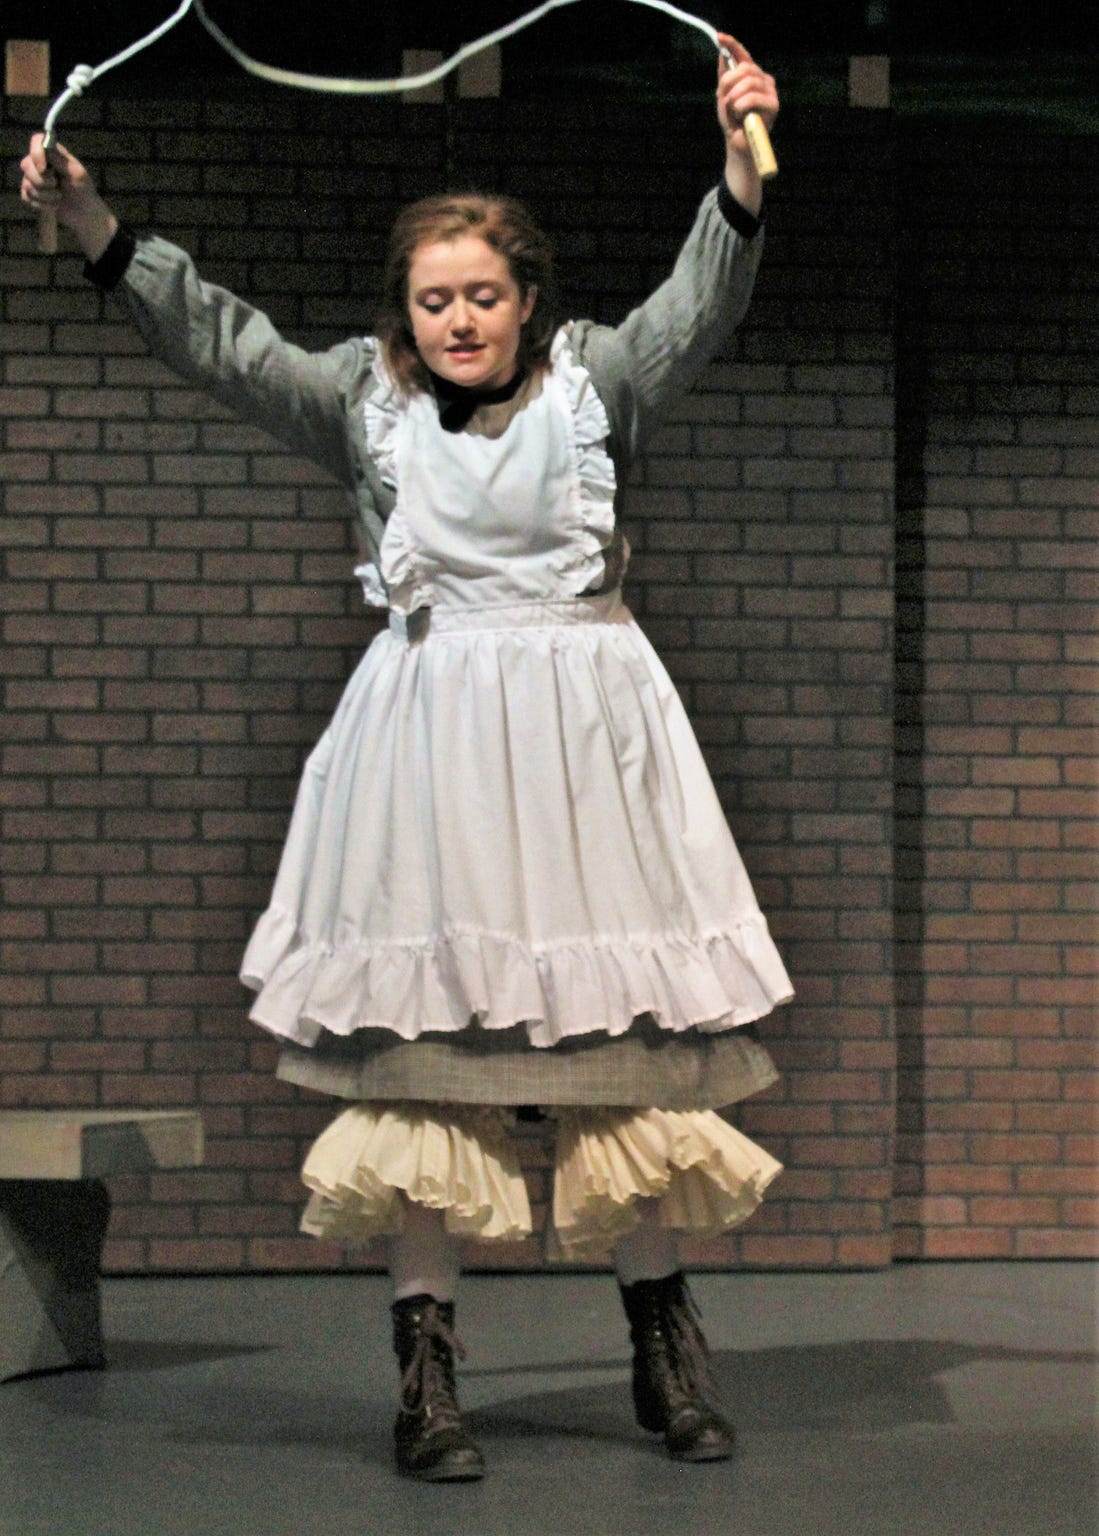 """Mary (Maddie Lowry) jumps rope outside after arriving in England from India in this rehearsal scene from """"The Secret Garden."""""""